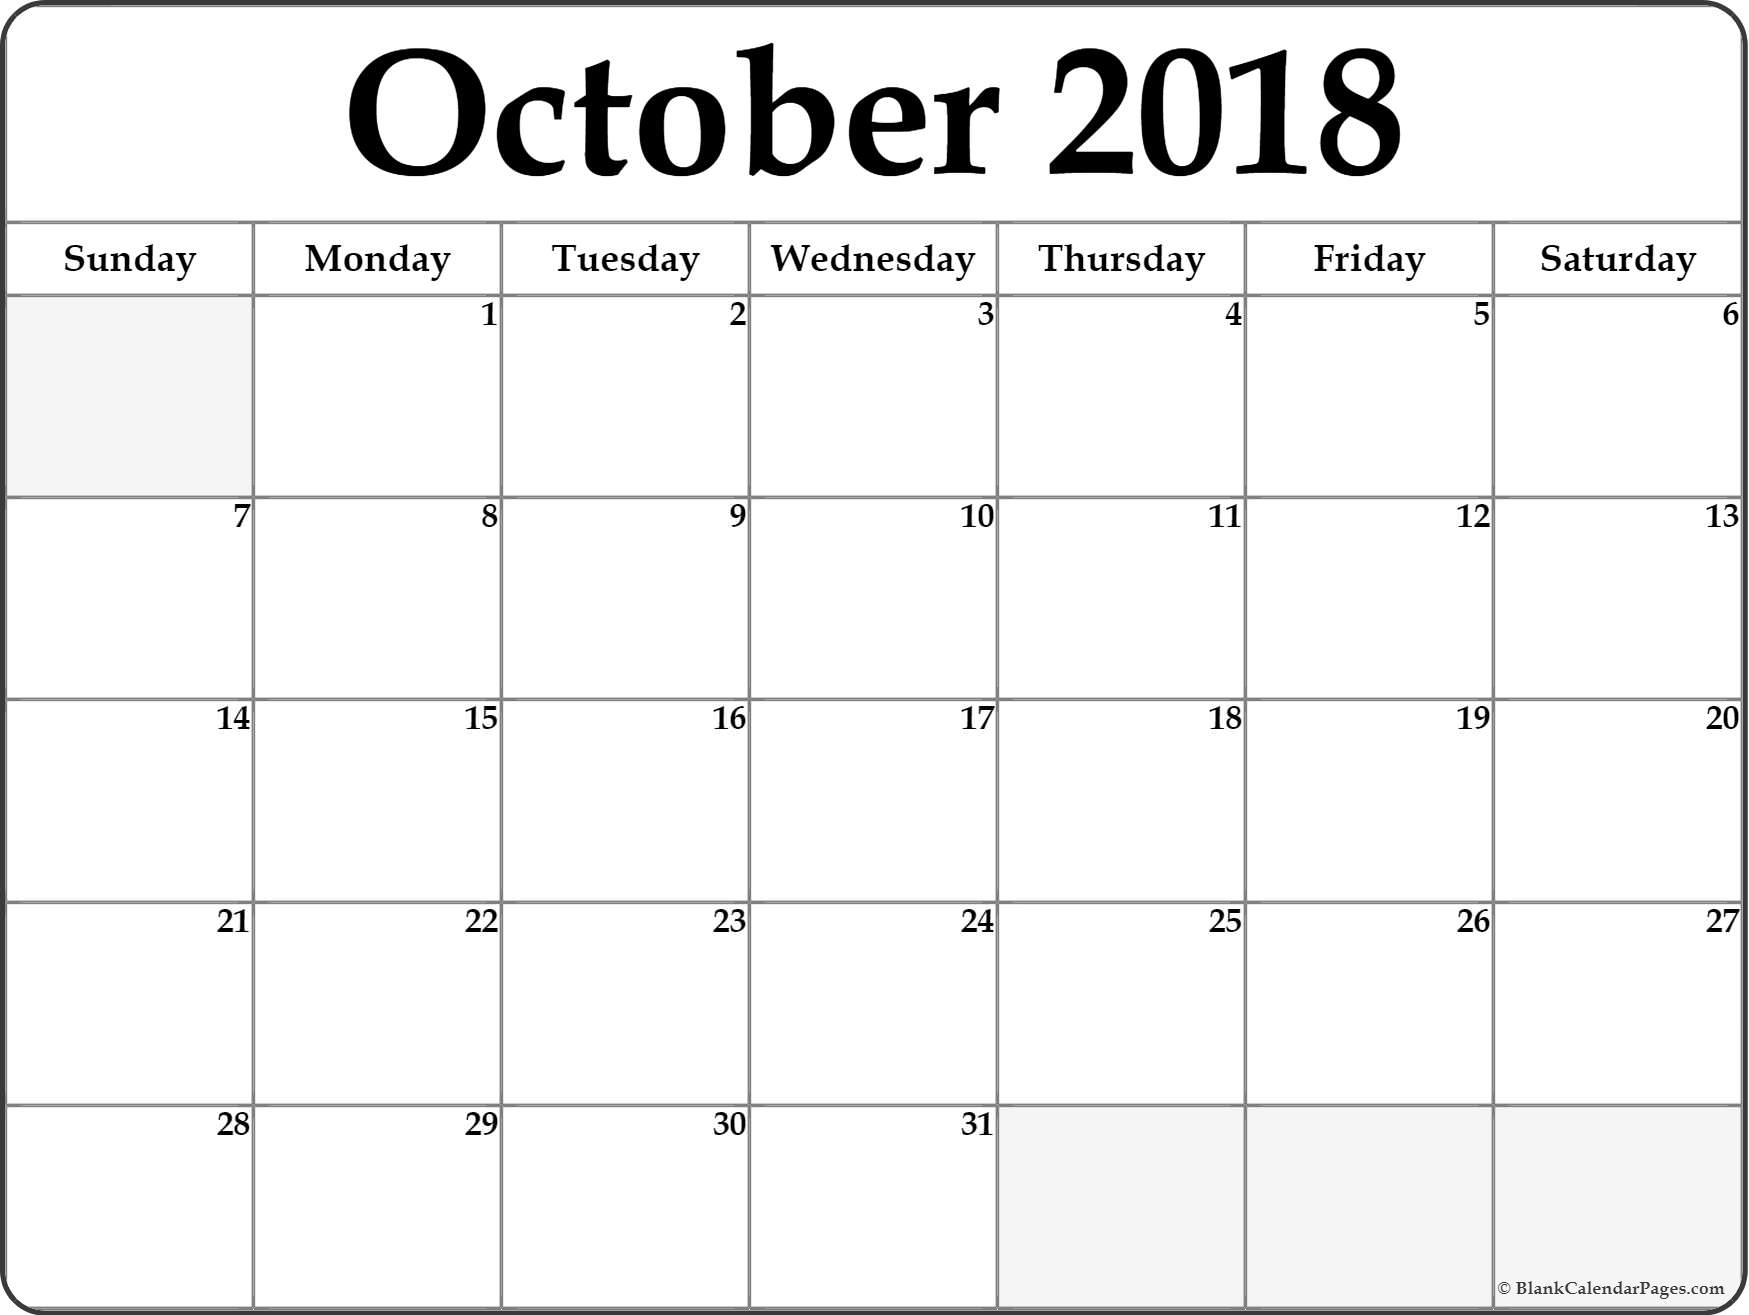 October-2018-Calendar-B4 - Mainstage Center For The Arts